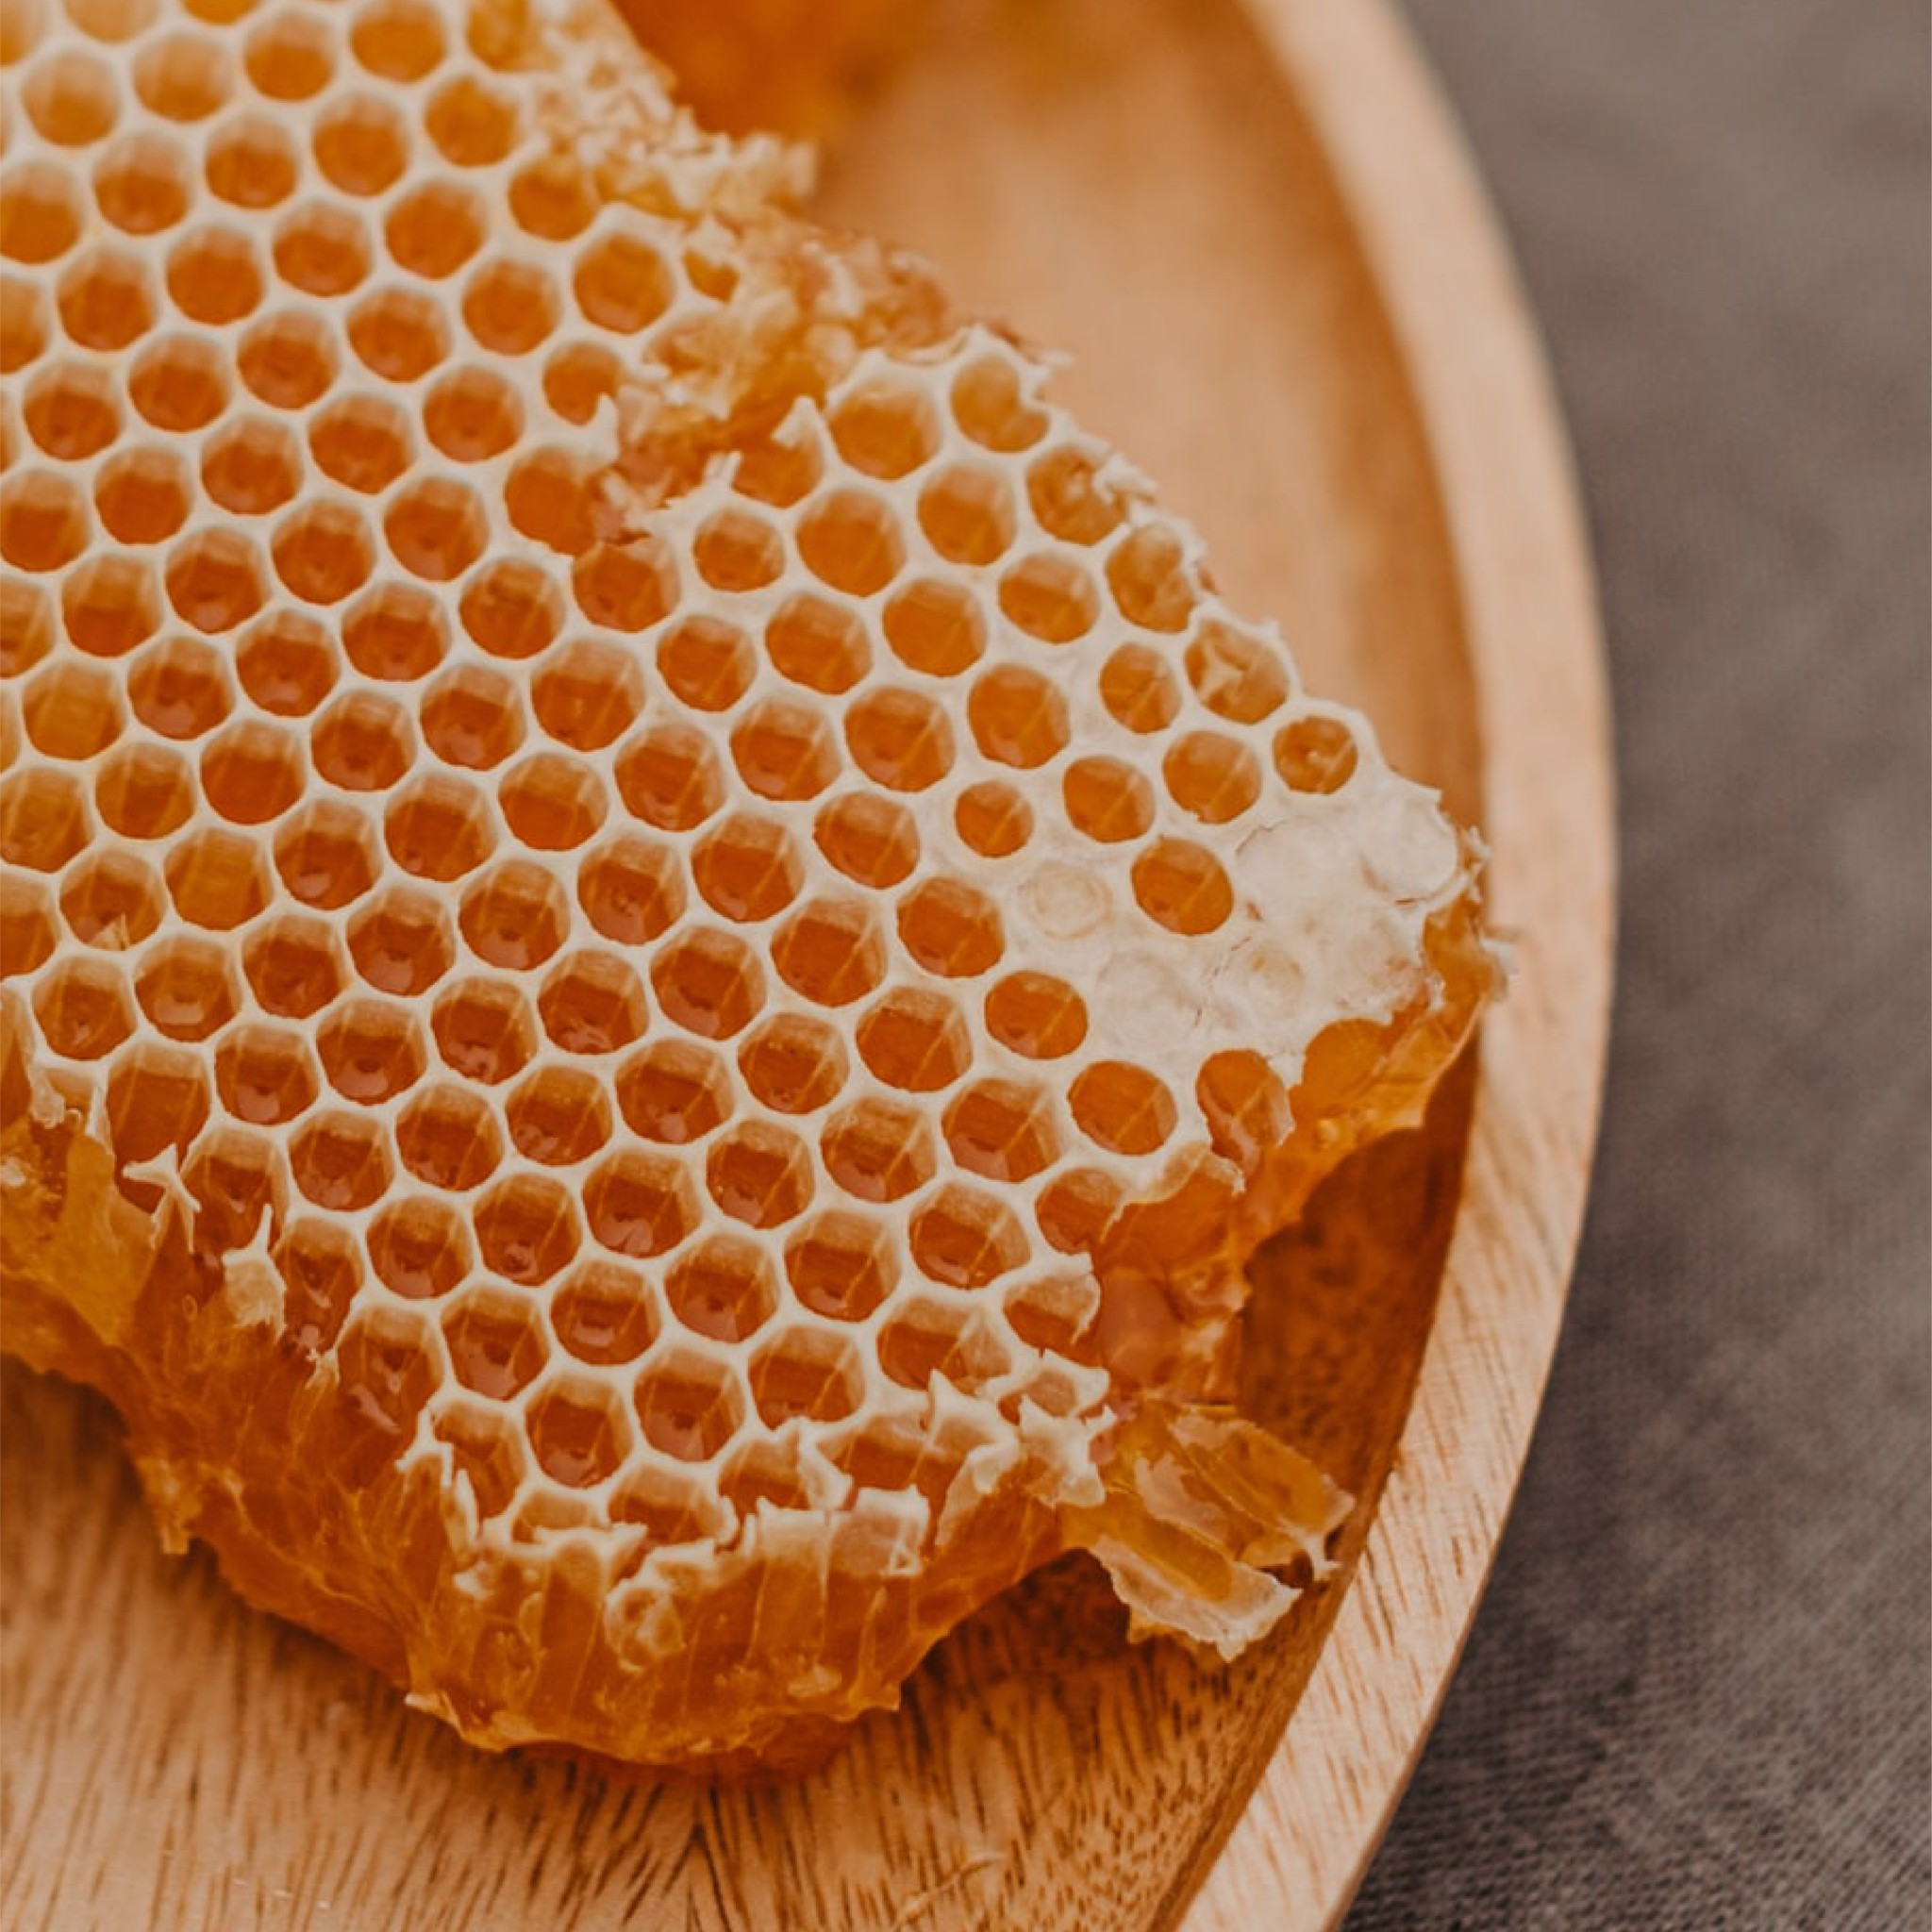 Hydroxypropyltrimonium Honey